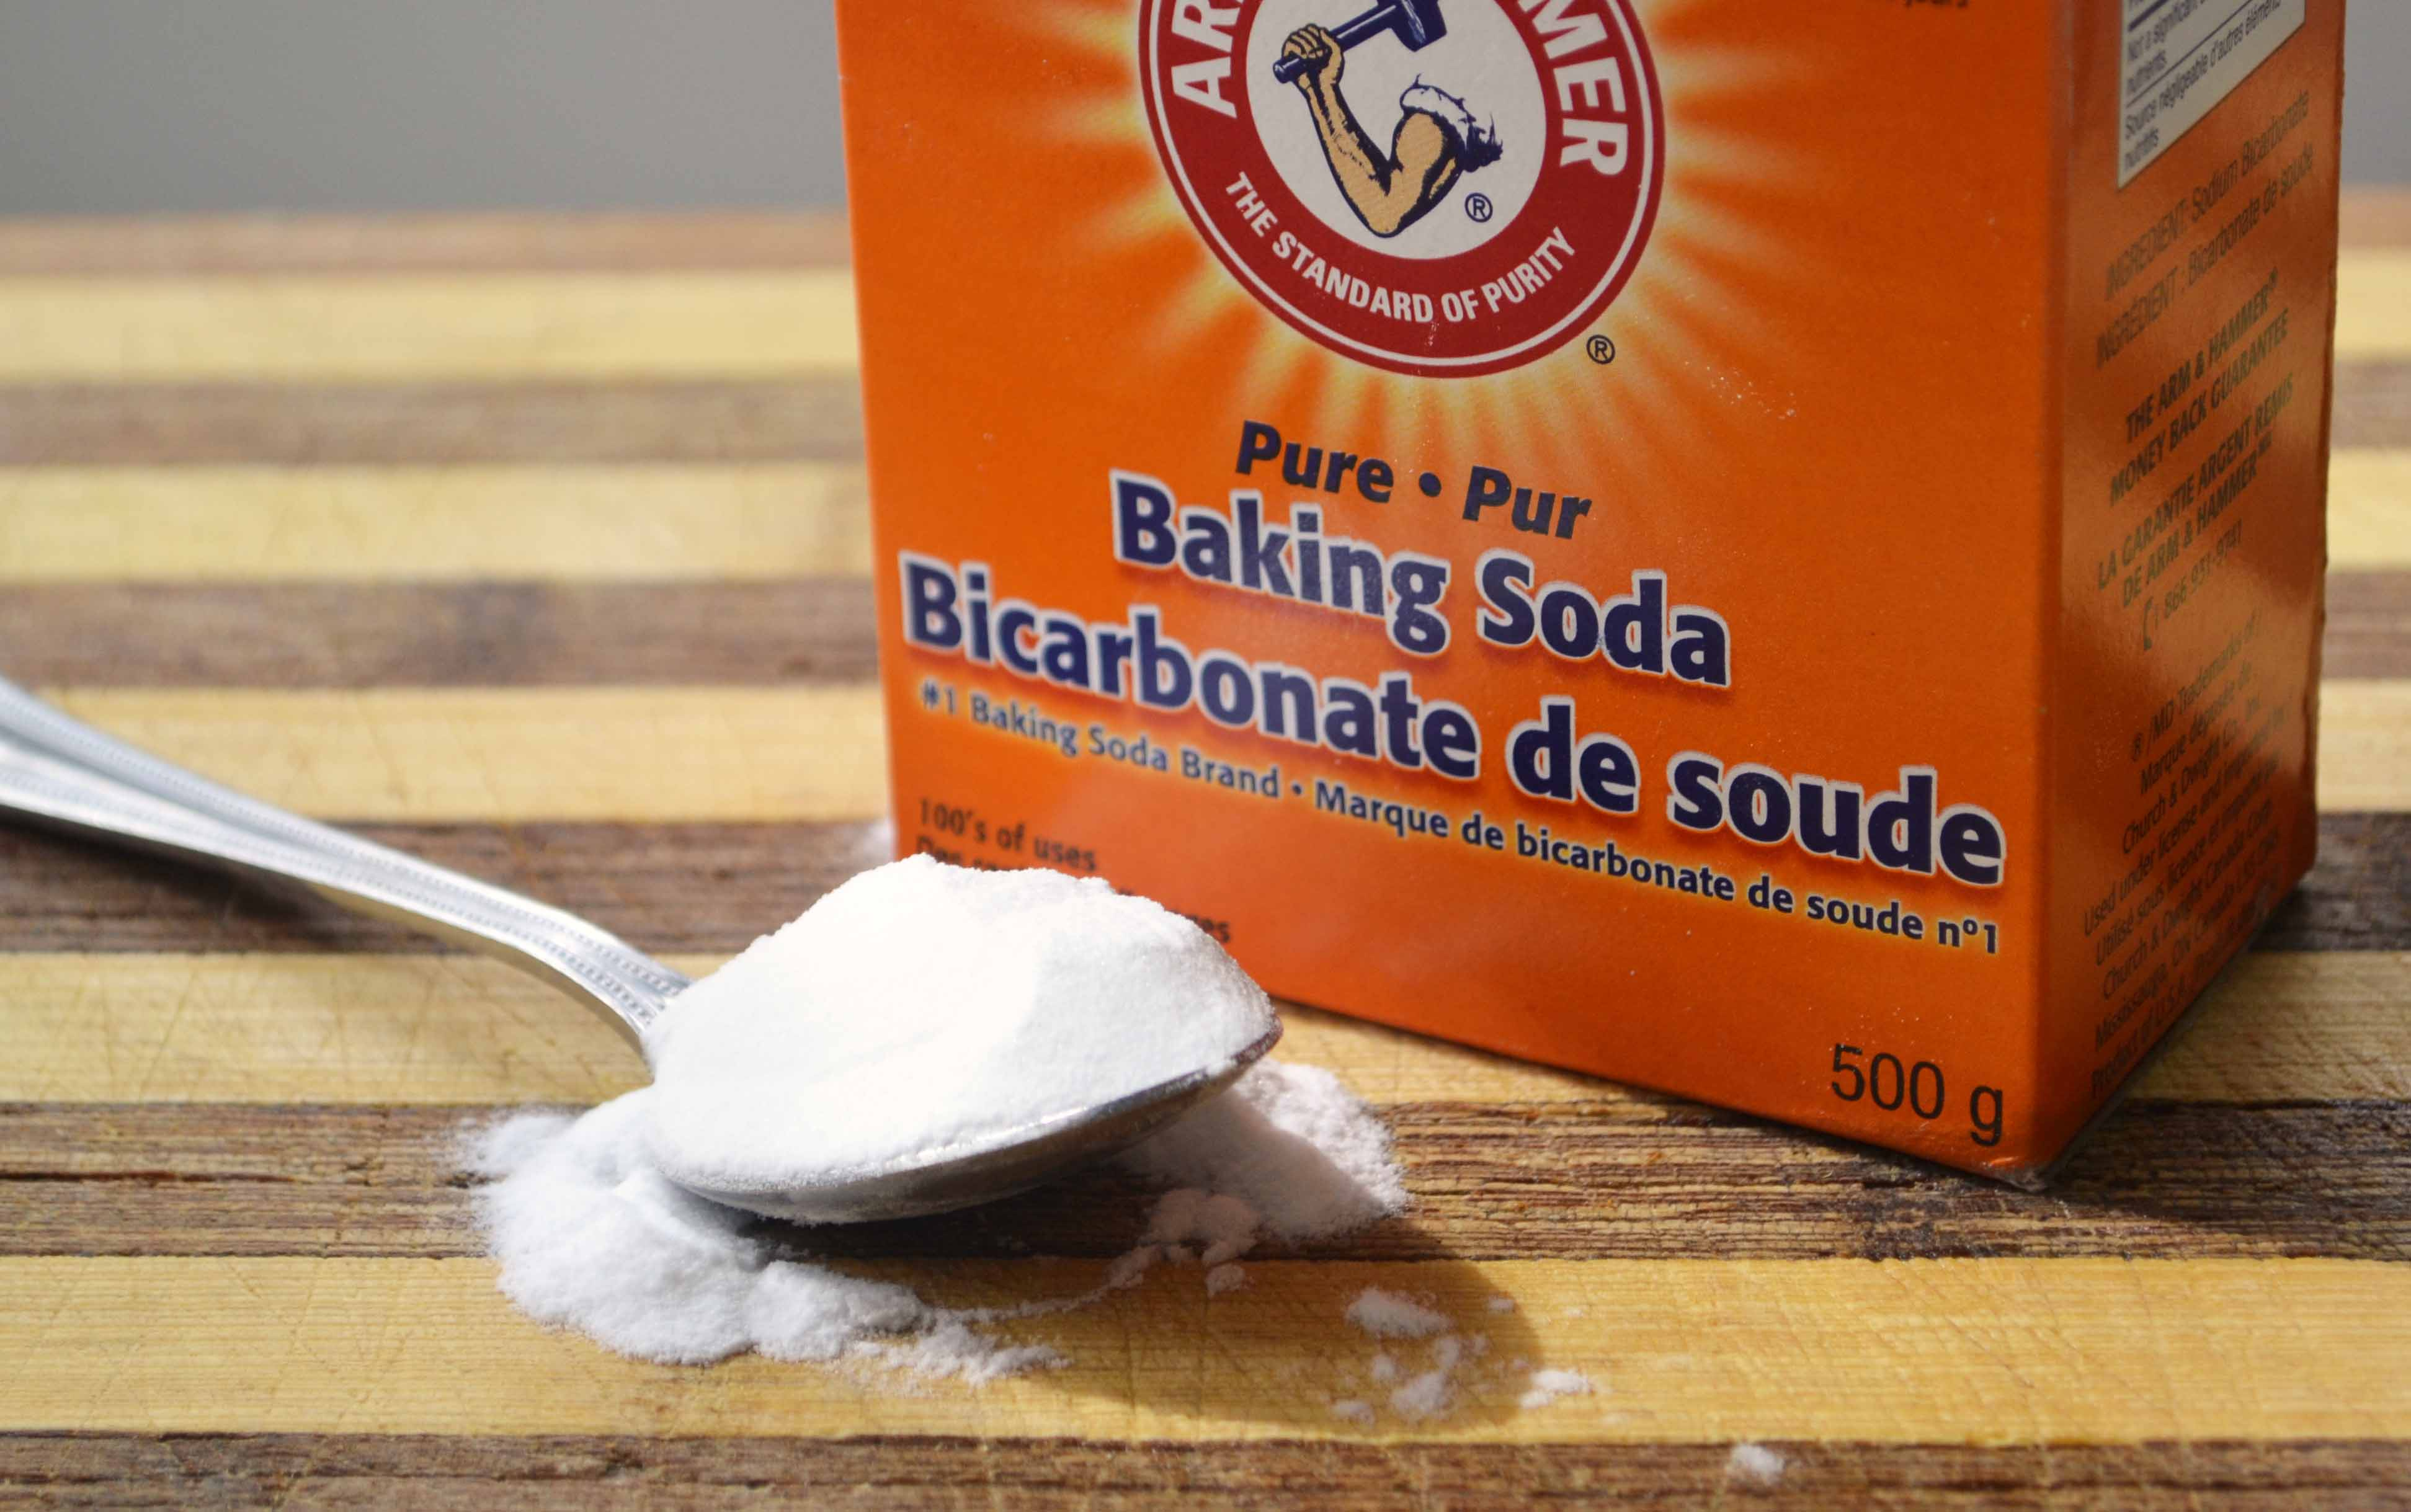 /www.healthyfoodhouse.com/wp-content/uploads/2015/01/how-to-use-baking-soda -to-clean-face-skin-clean-your-hair-whiten-your-teeth.jpg